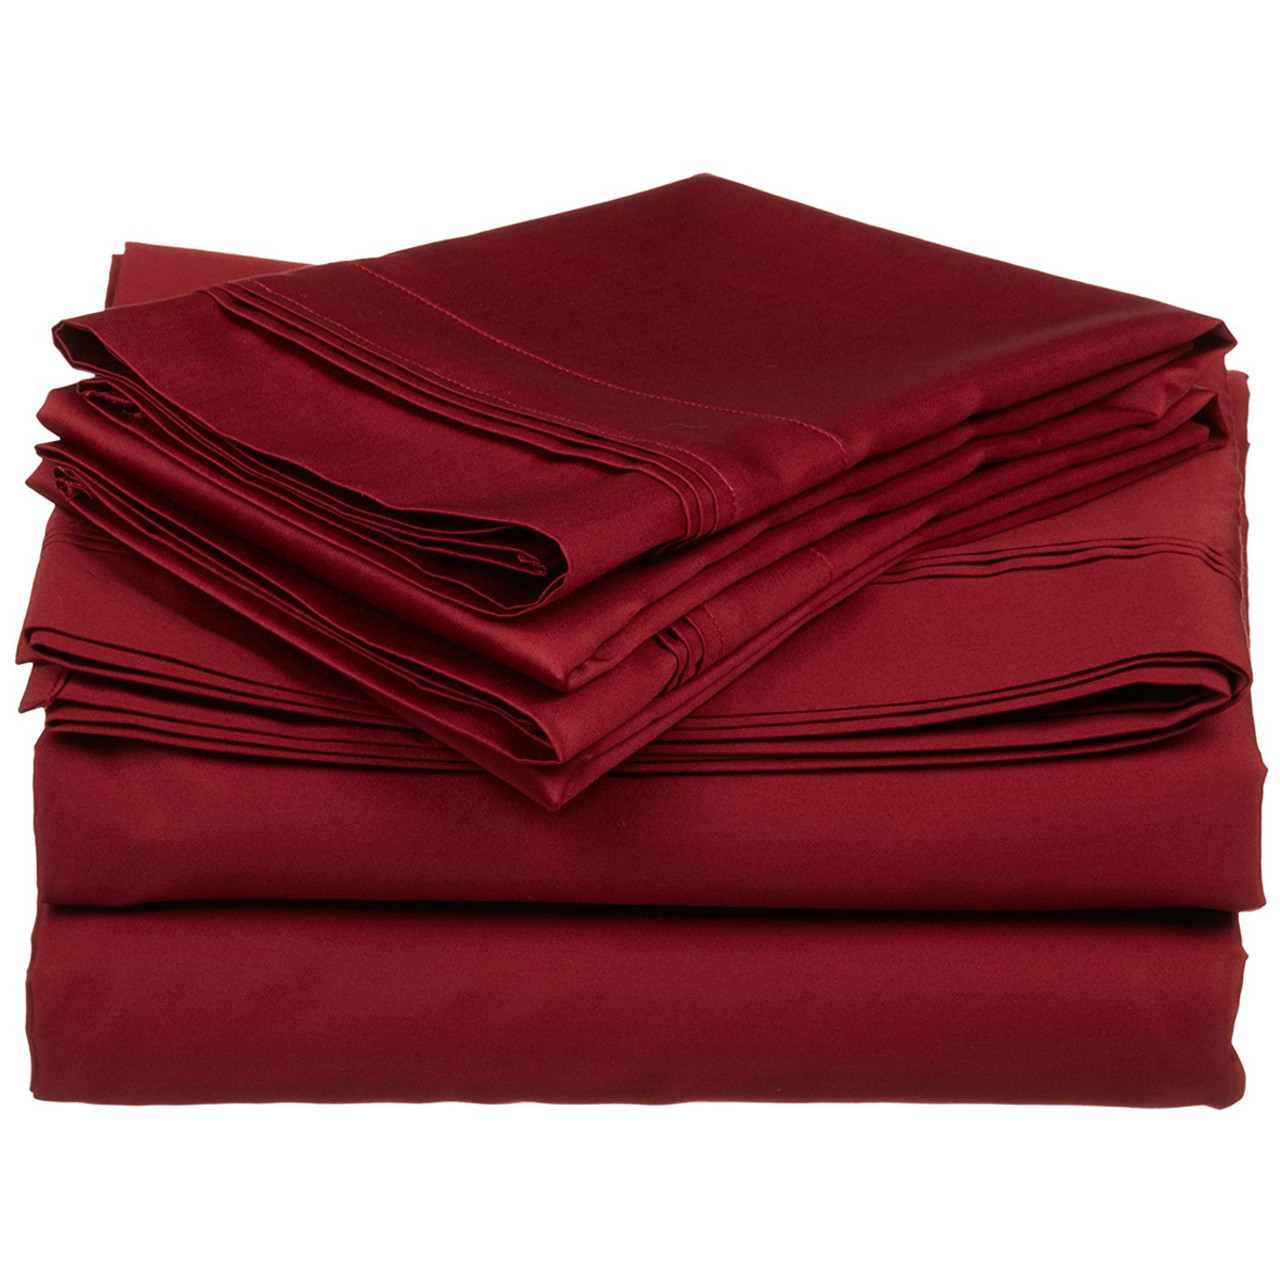 100 Egyptian Cotton Sheets Triple Pleated 600 Thread Count 100 Egyptian Cotton Sateen Sheets